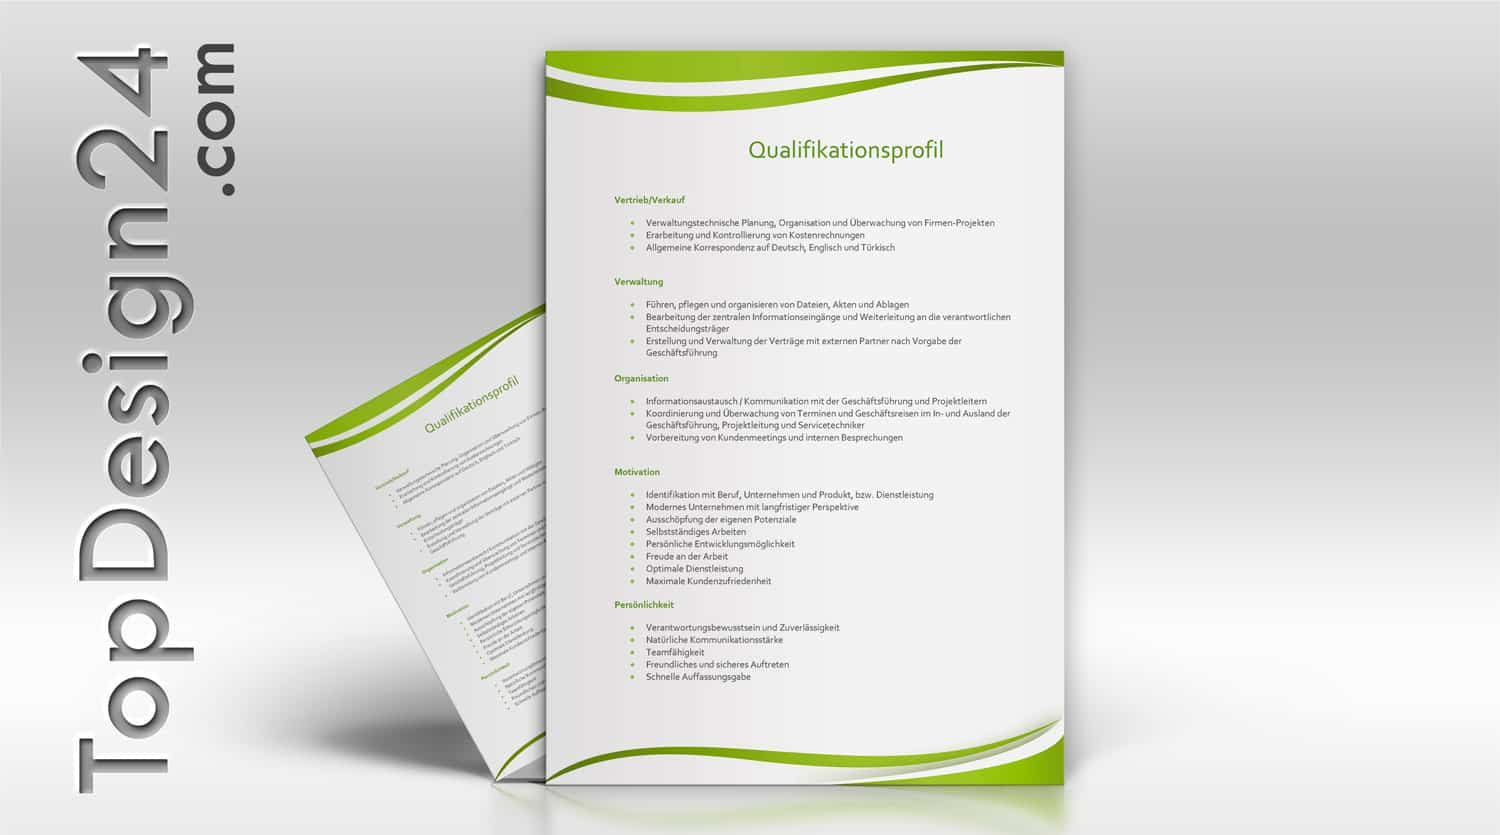 Qualifikationsprofil – TopDesign24